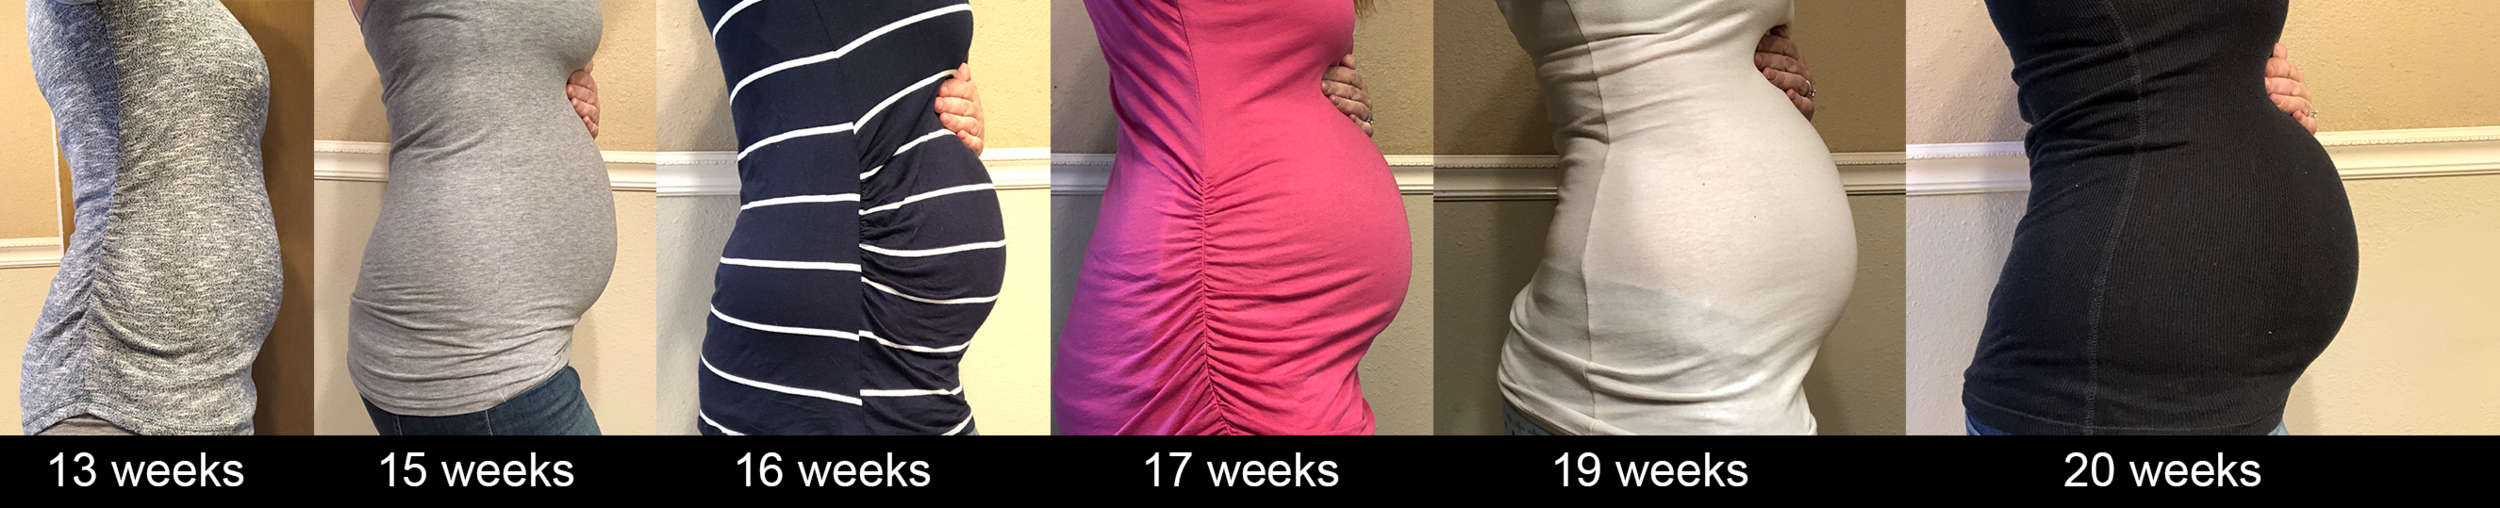 My growing belly